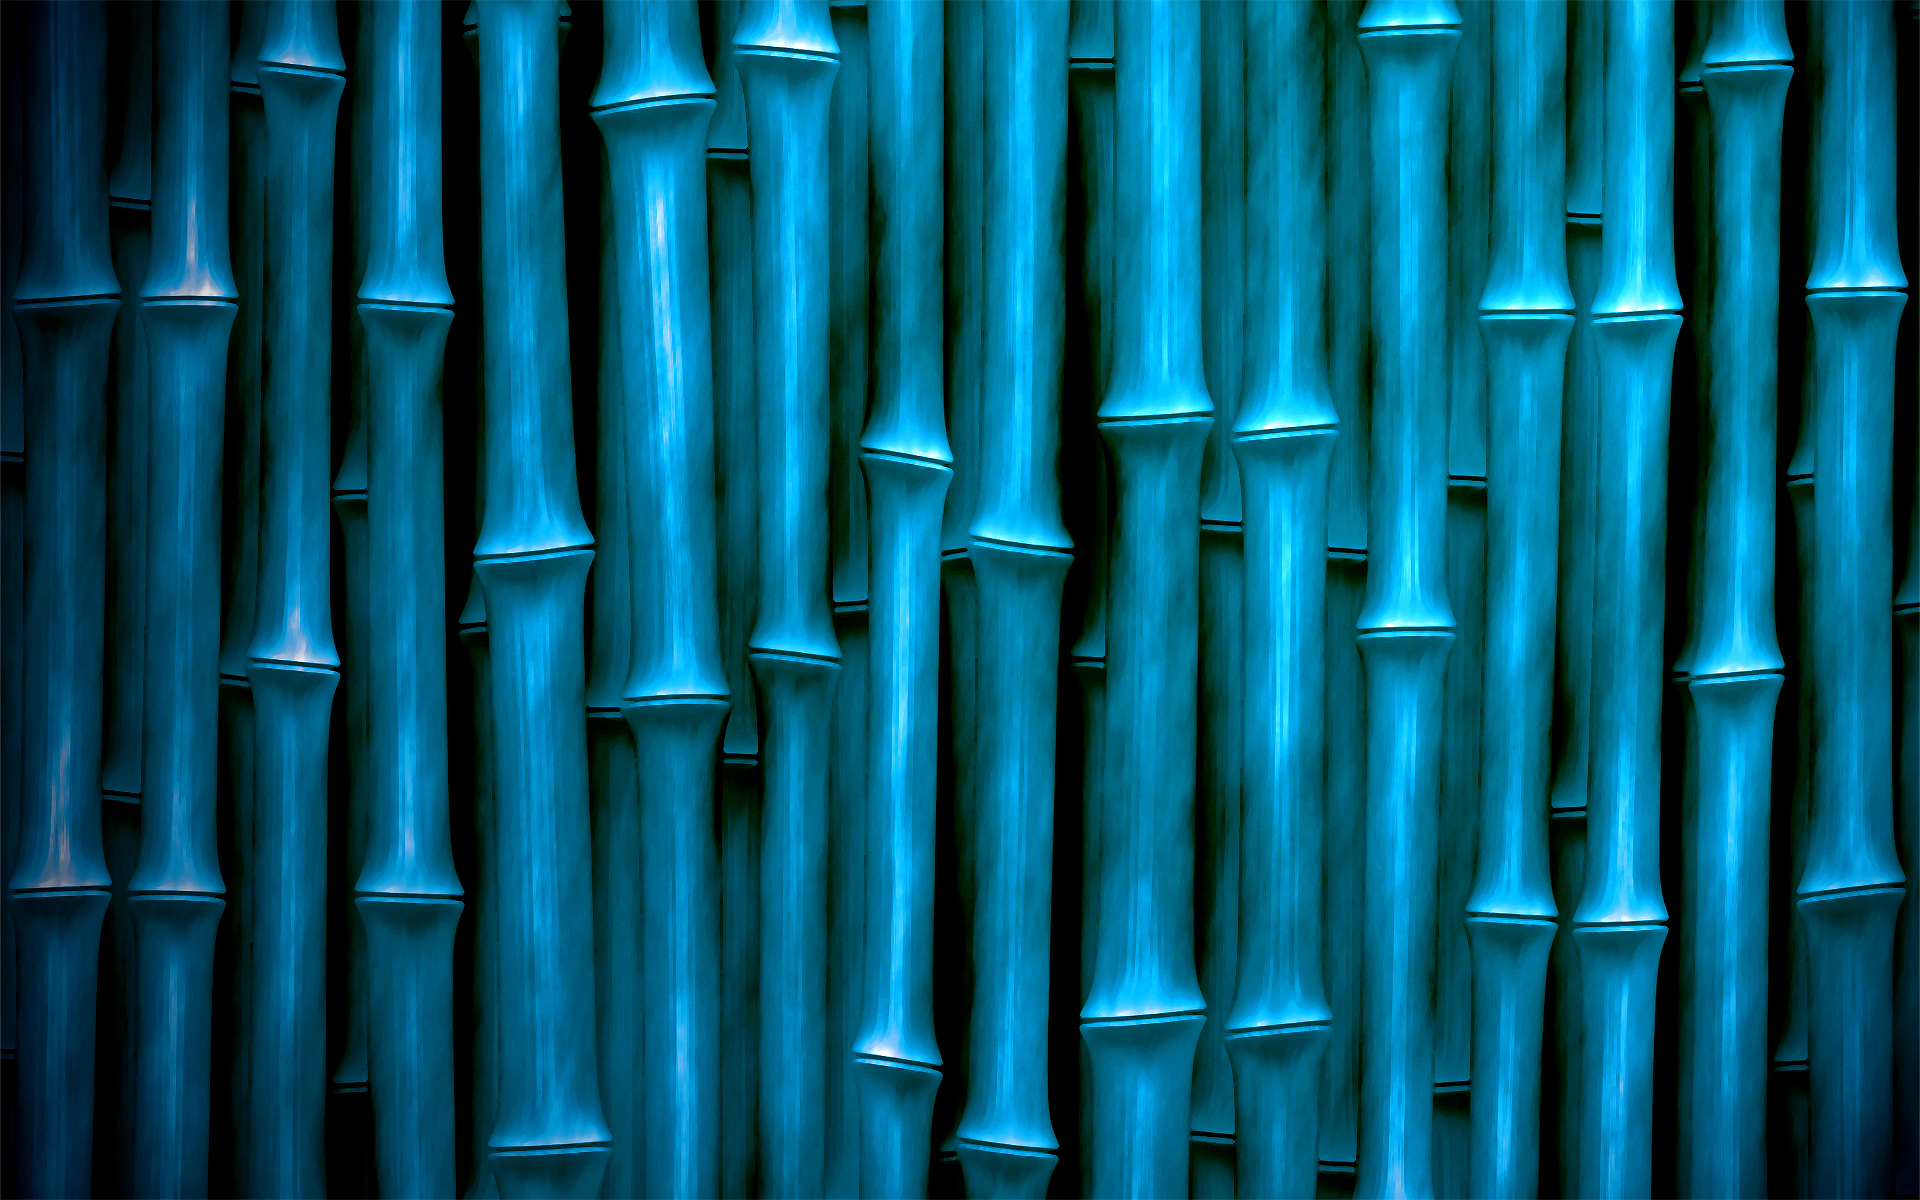 blue bamboo, texture bambooа, blue bamboo texture, photo, background